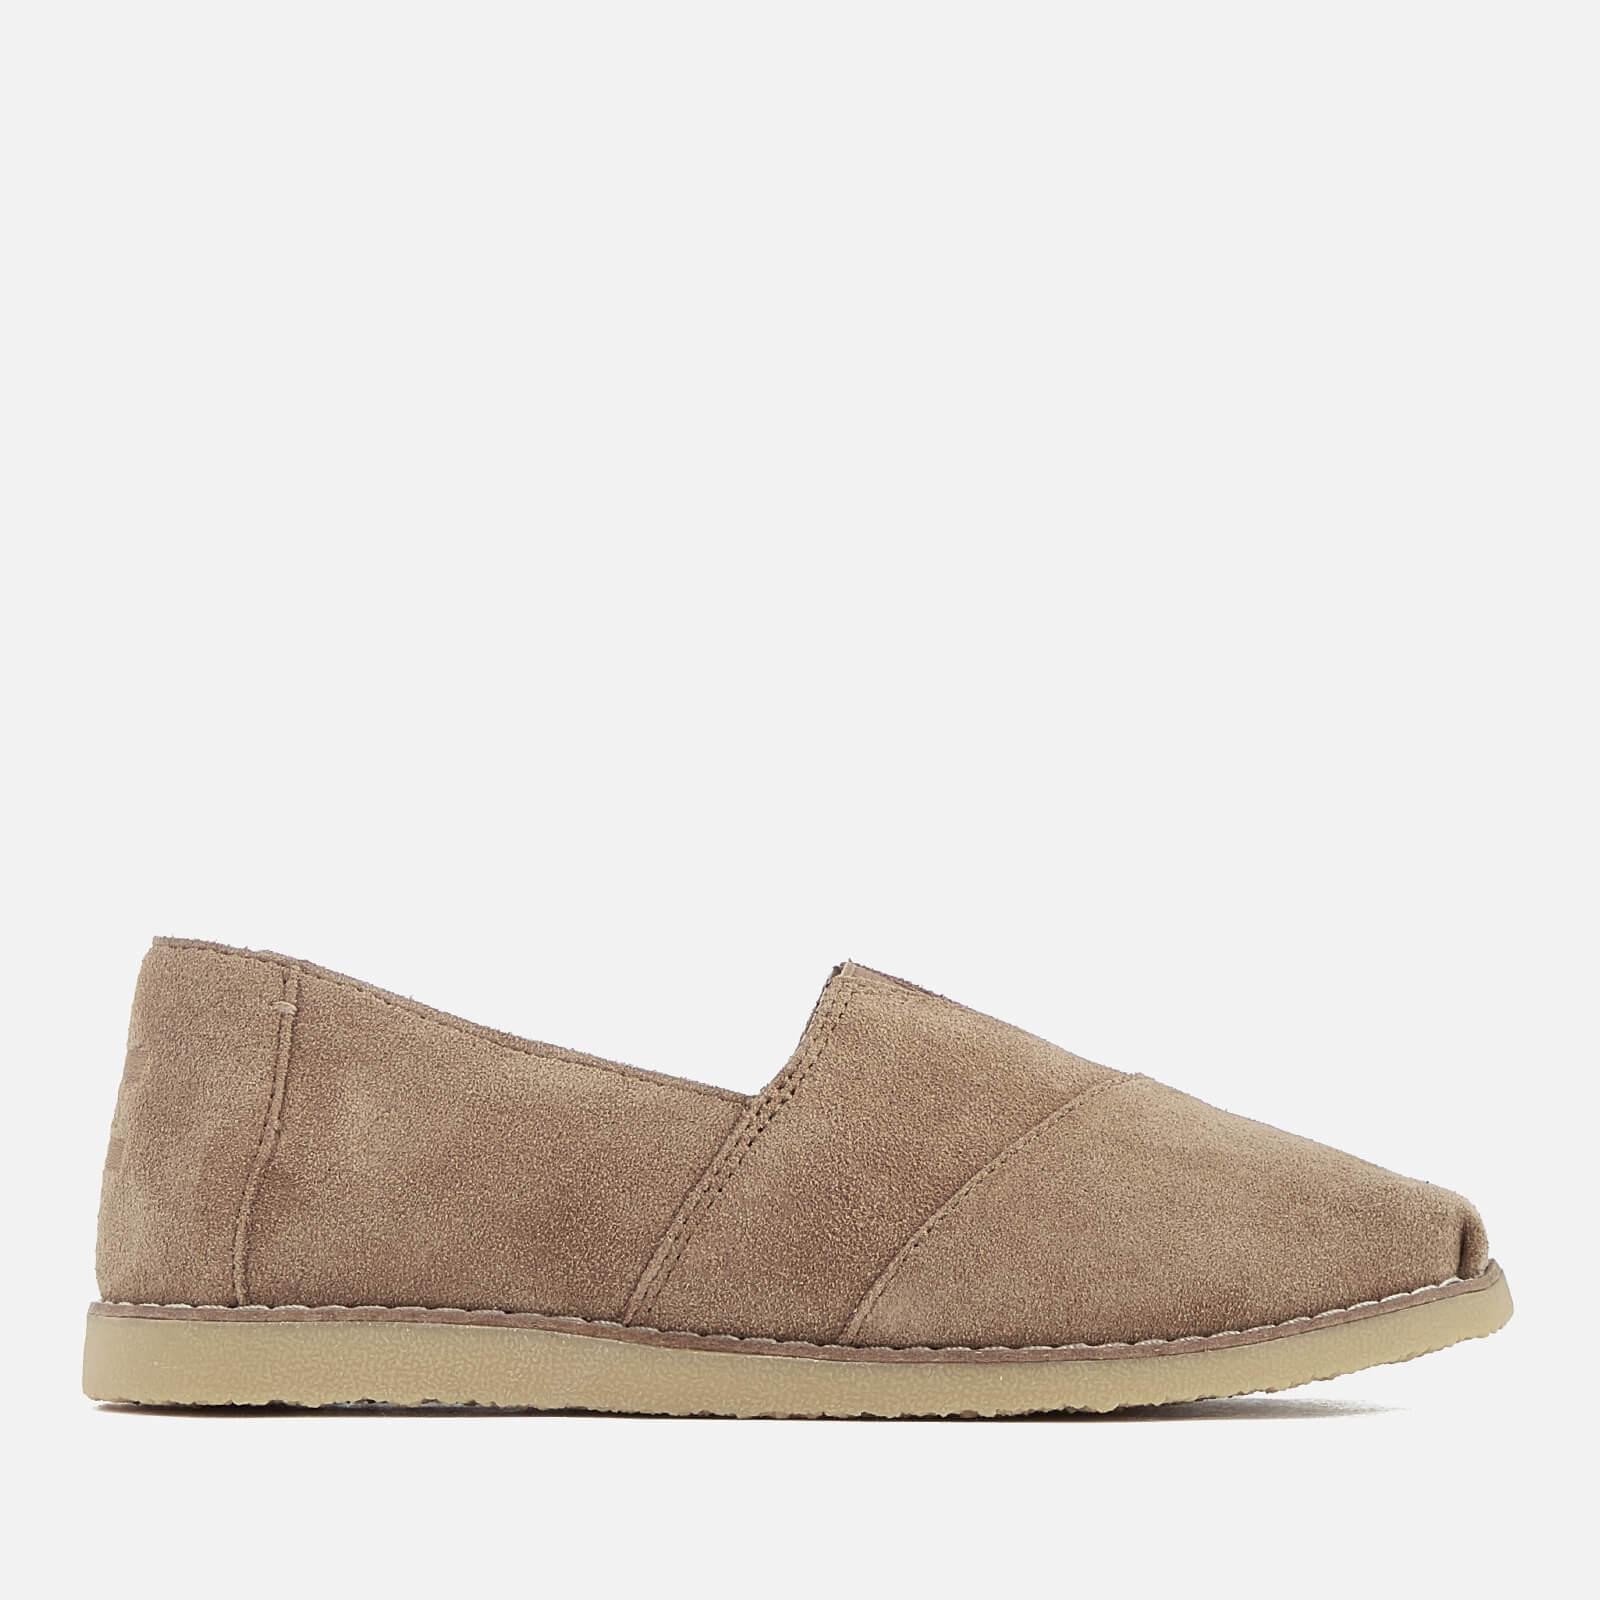 Where To Buy Toms Shoes On Sale